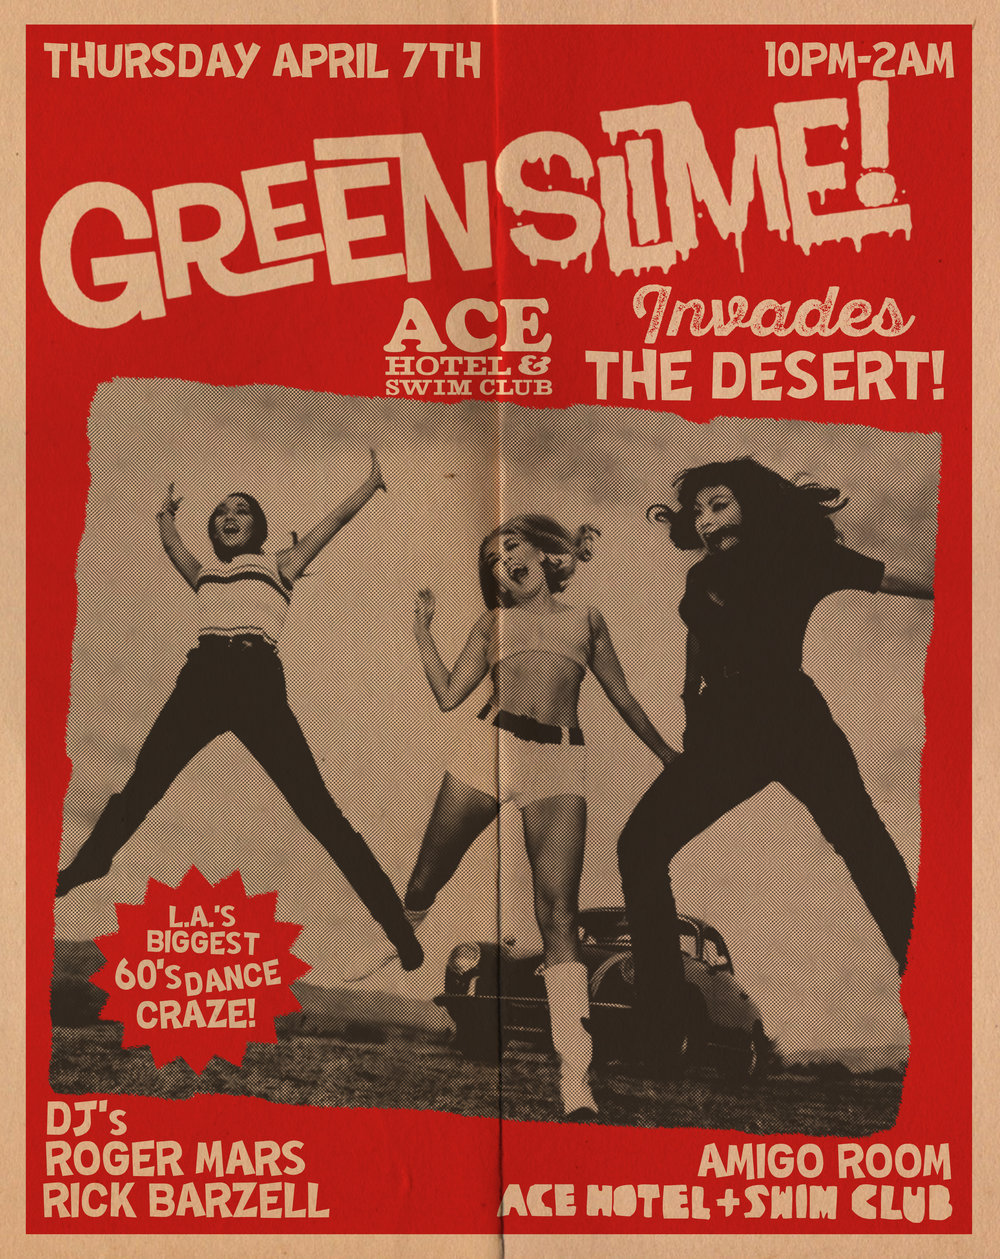 GREEN SLIME ACE FULL.jpg